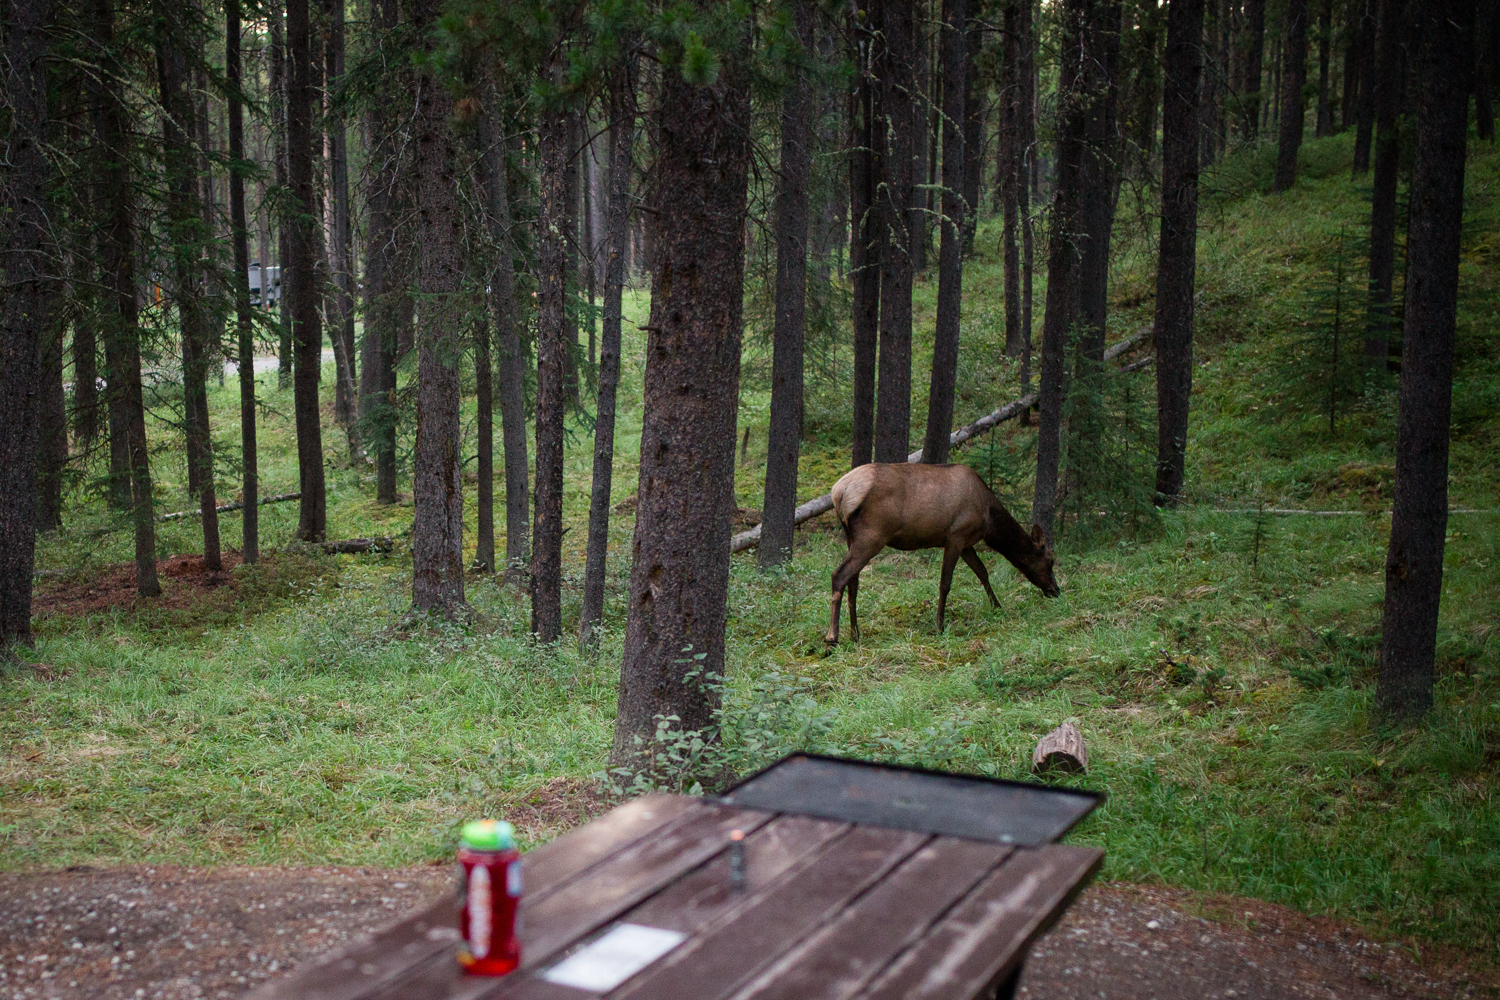 We enjoyed our last chilly sleep in the mountains - even making a new elk friend - before our long weekend road trip came to an end. -